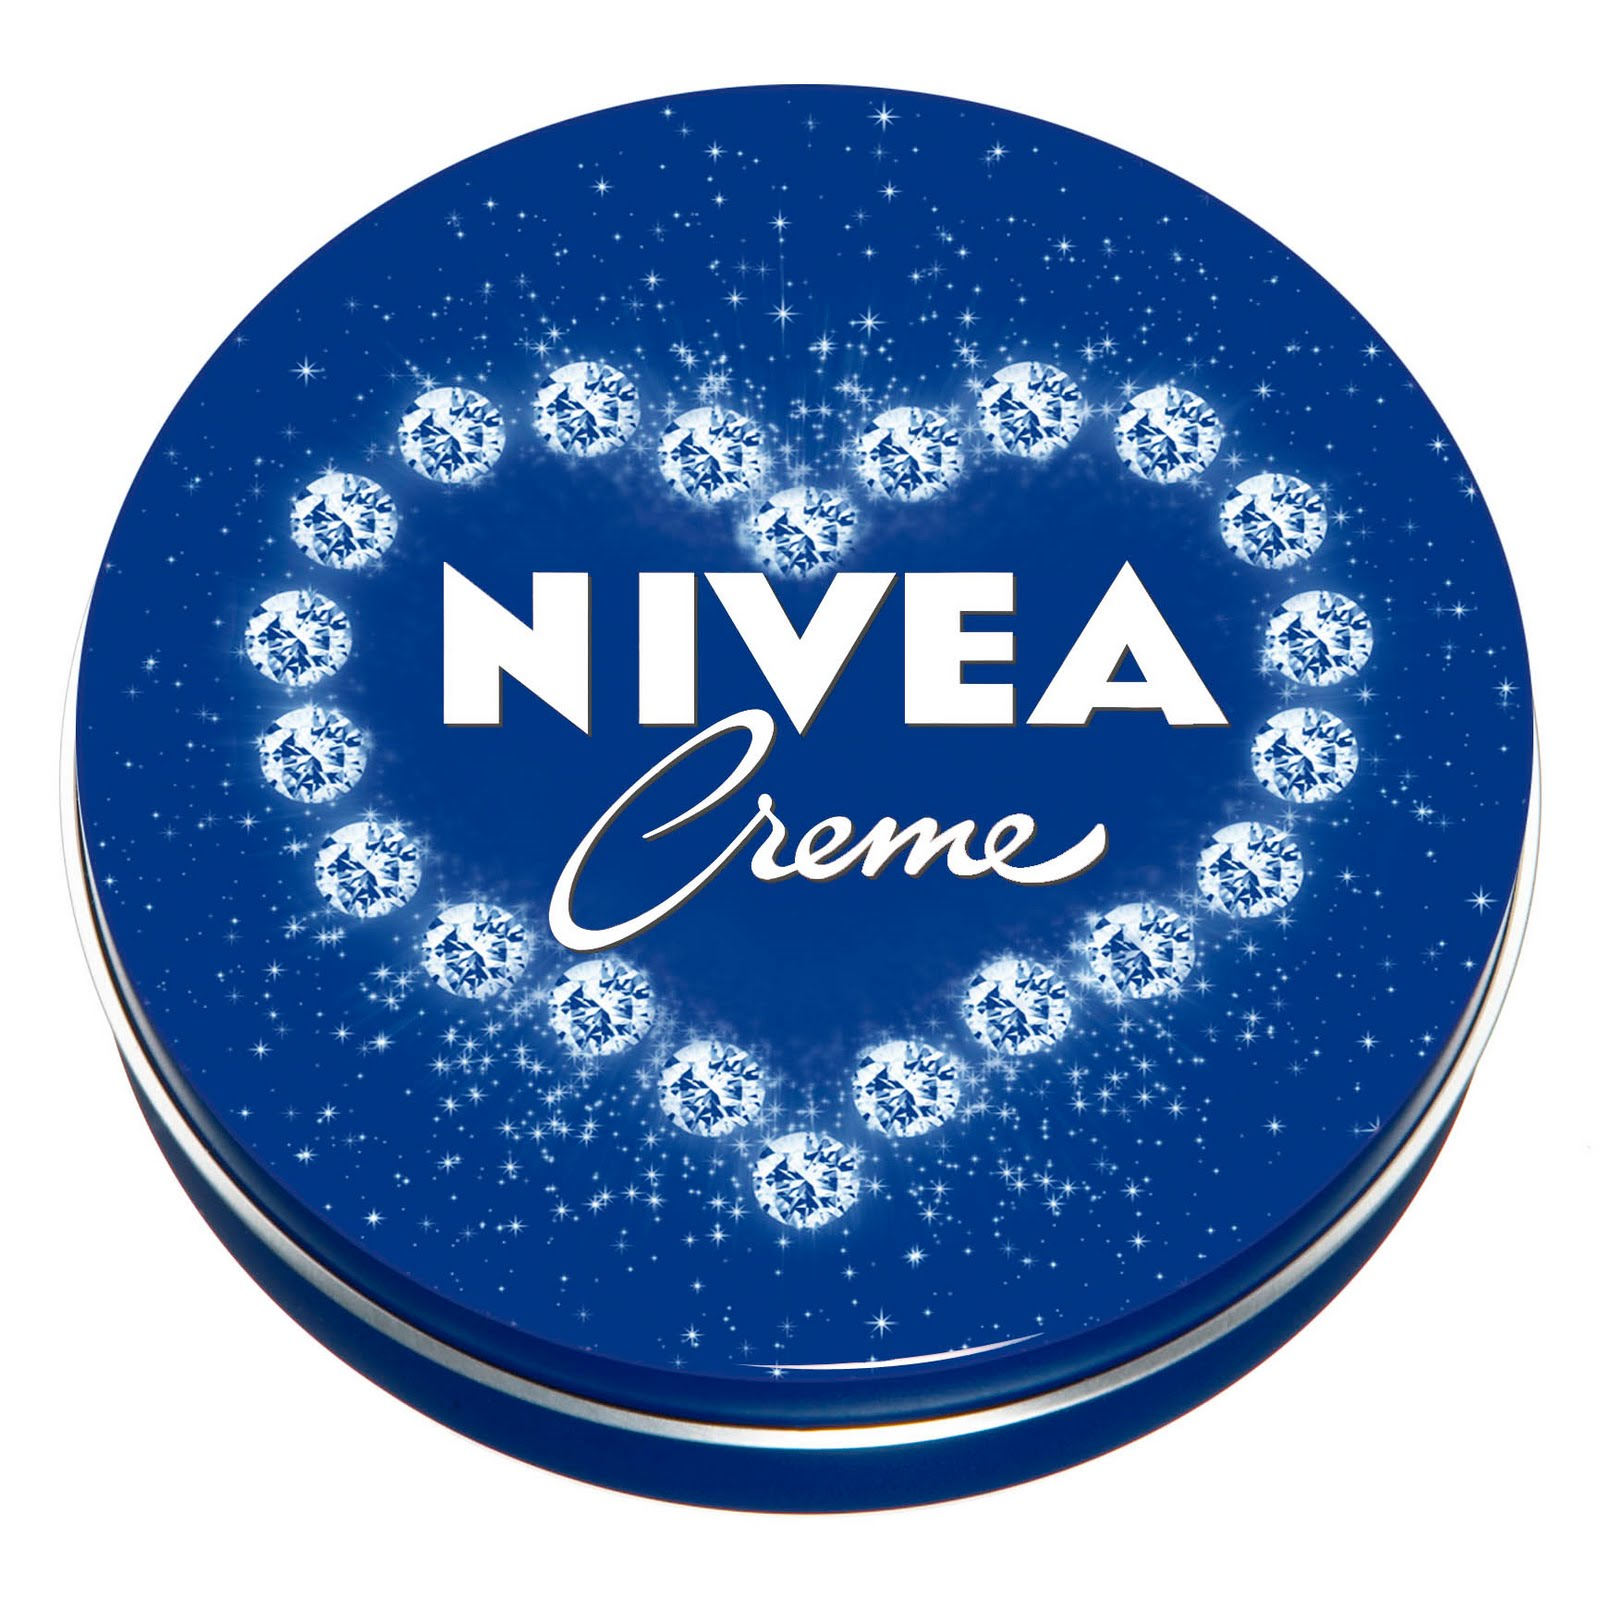 what is nivea cream used for